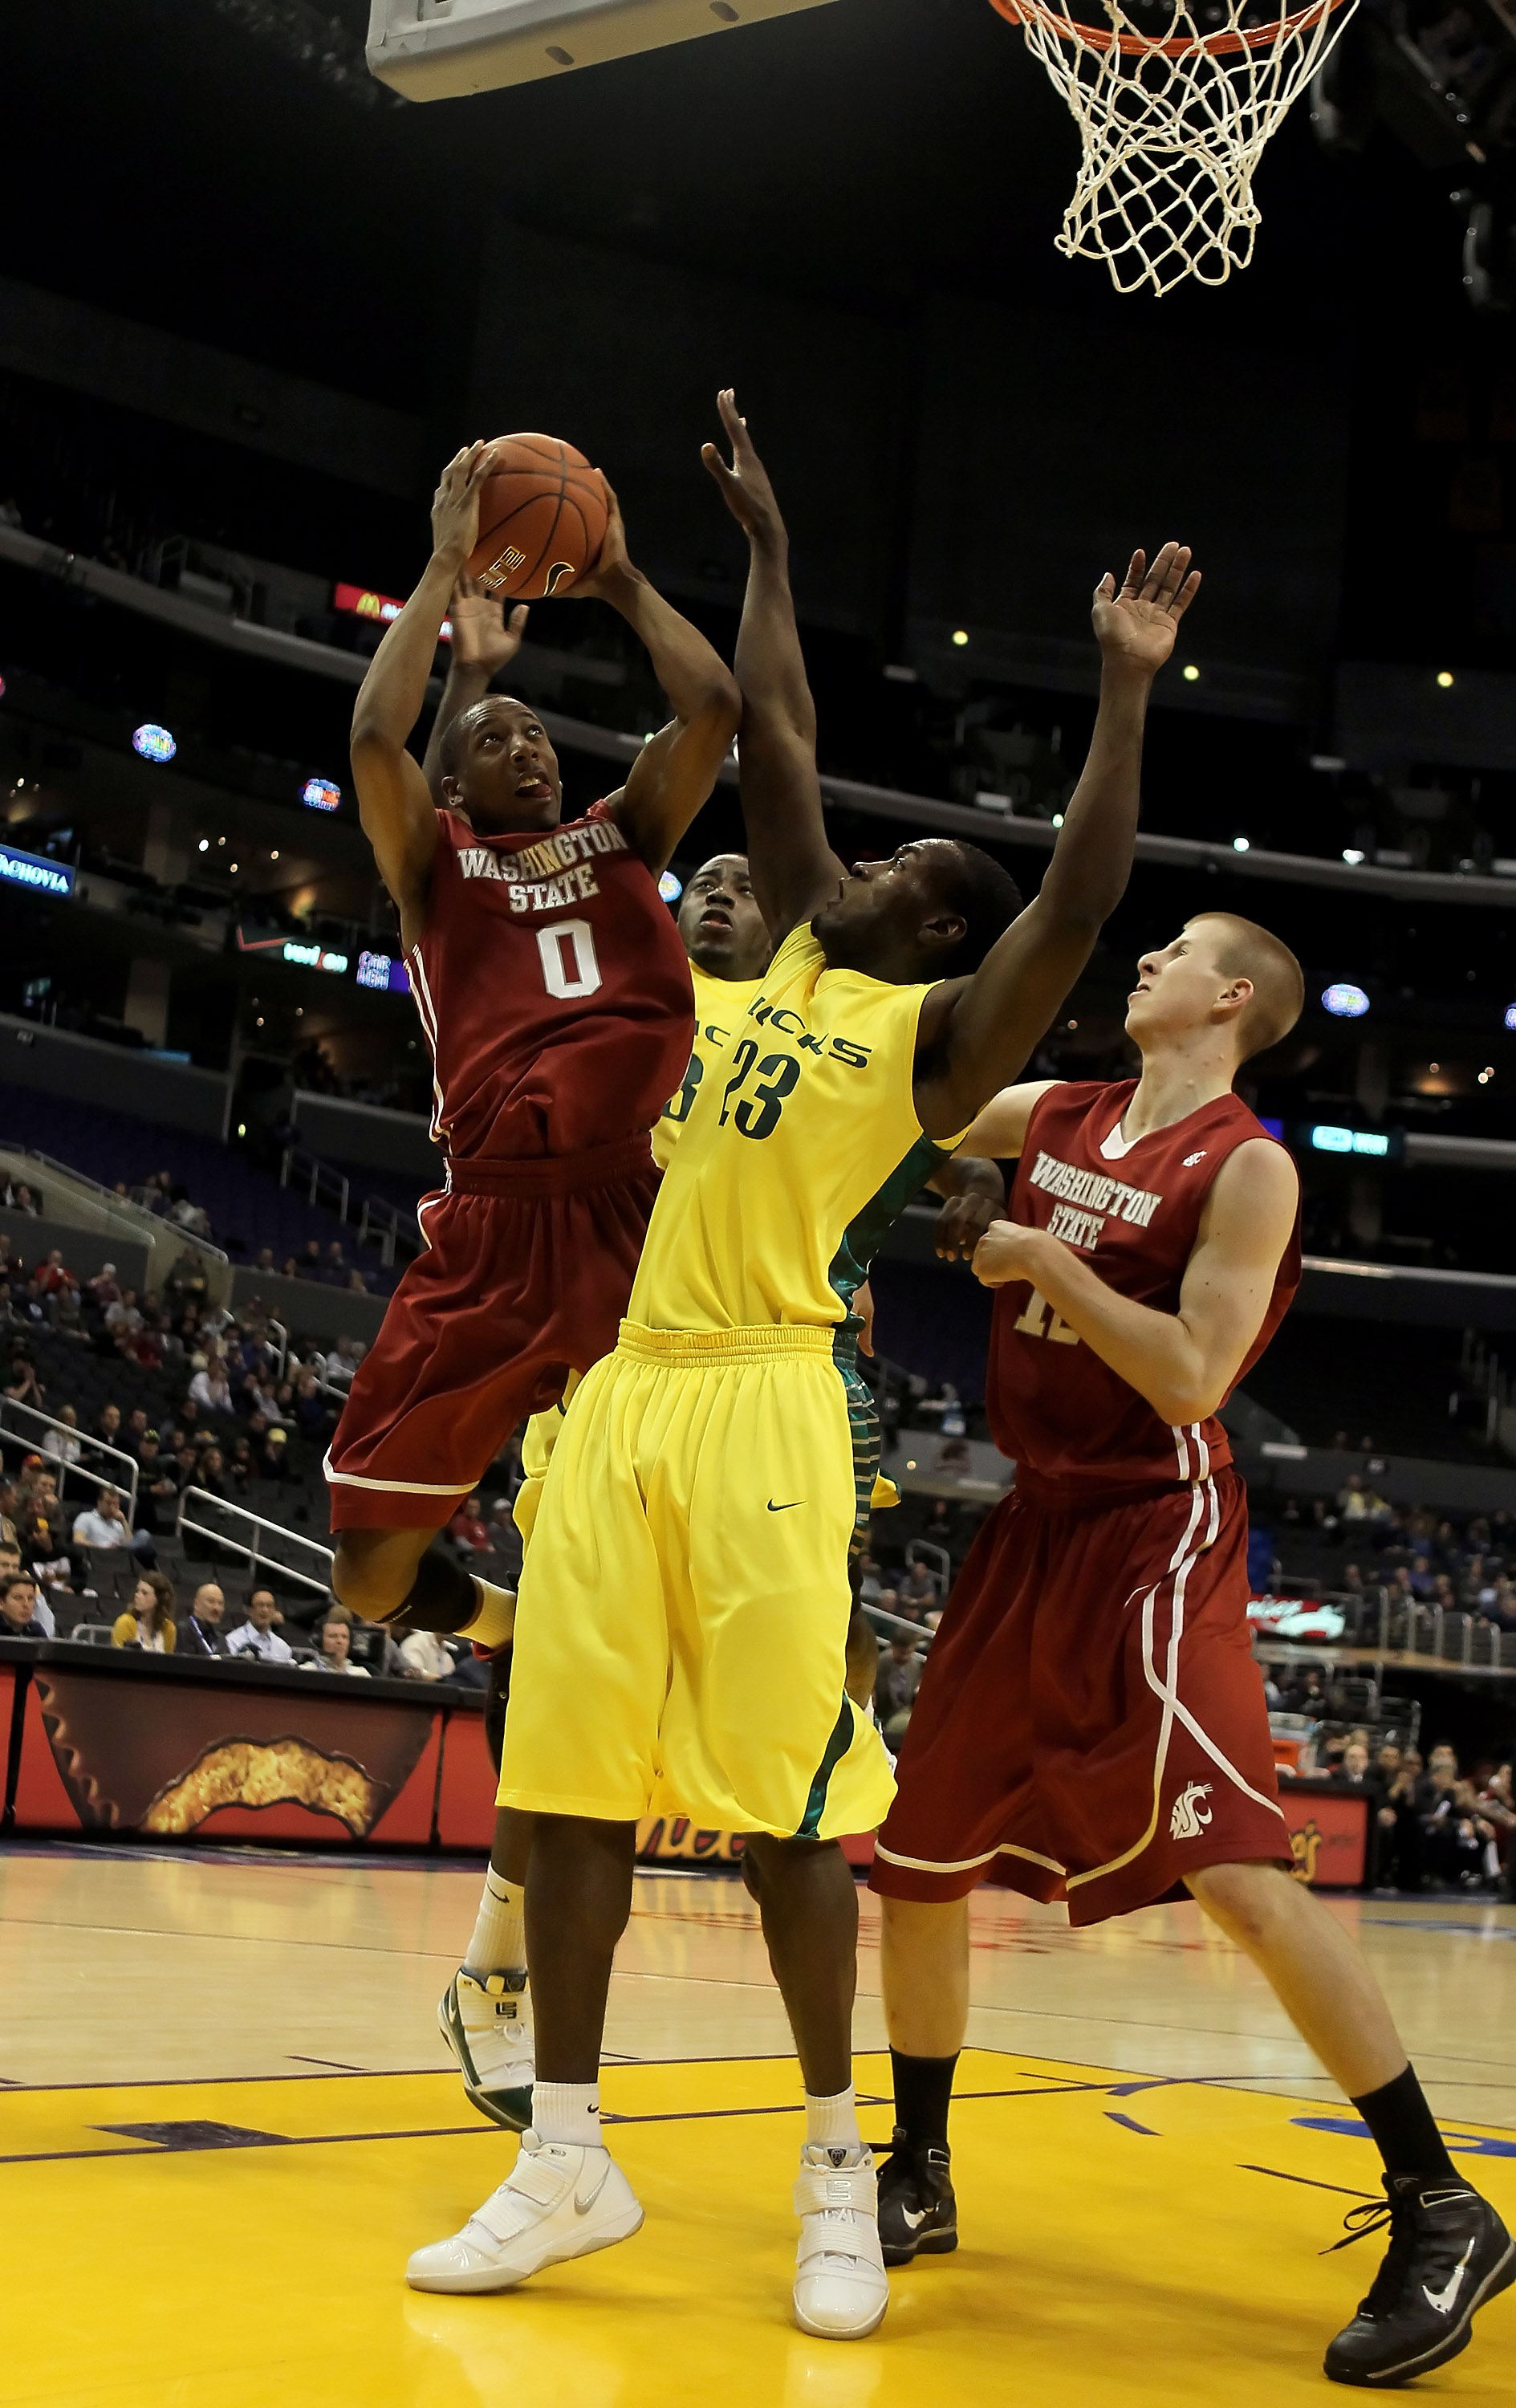 LOS ANGELES, CA - MARCH 10:  Marcus Capers #0 of the Washington State Cougars drives to the basket while being defended by DeAngelo Casto #23 of the Oregon Ducks in the half during the first round of the Pac-10 Basketball Tournament at Staples Center on M